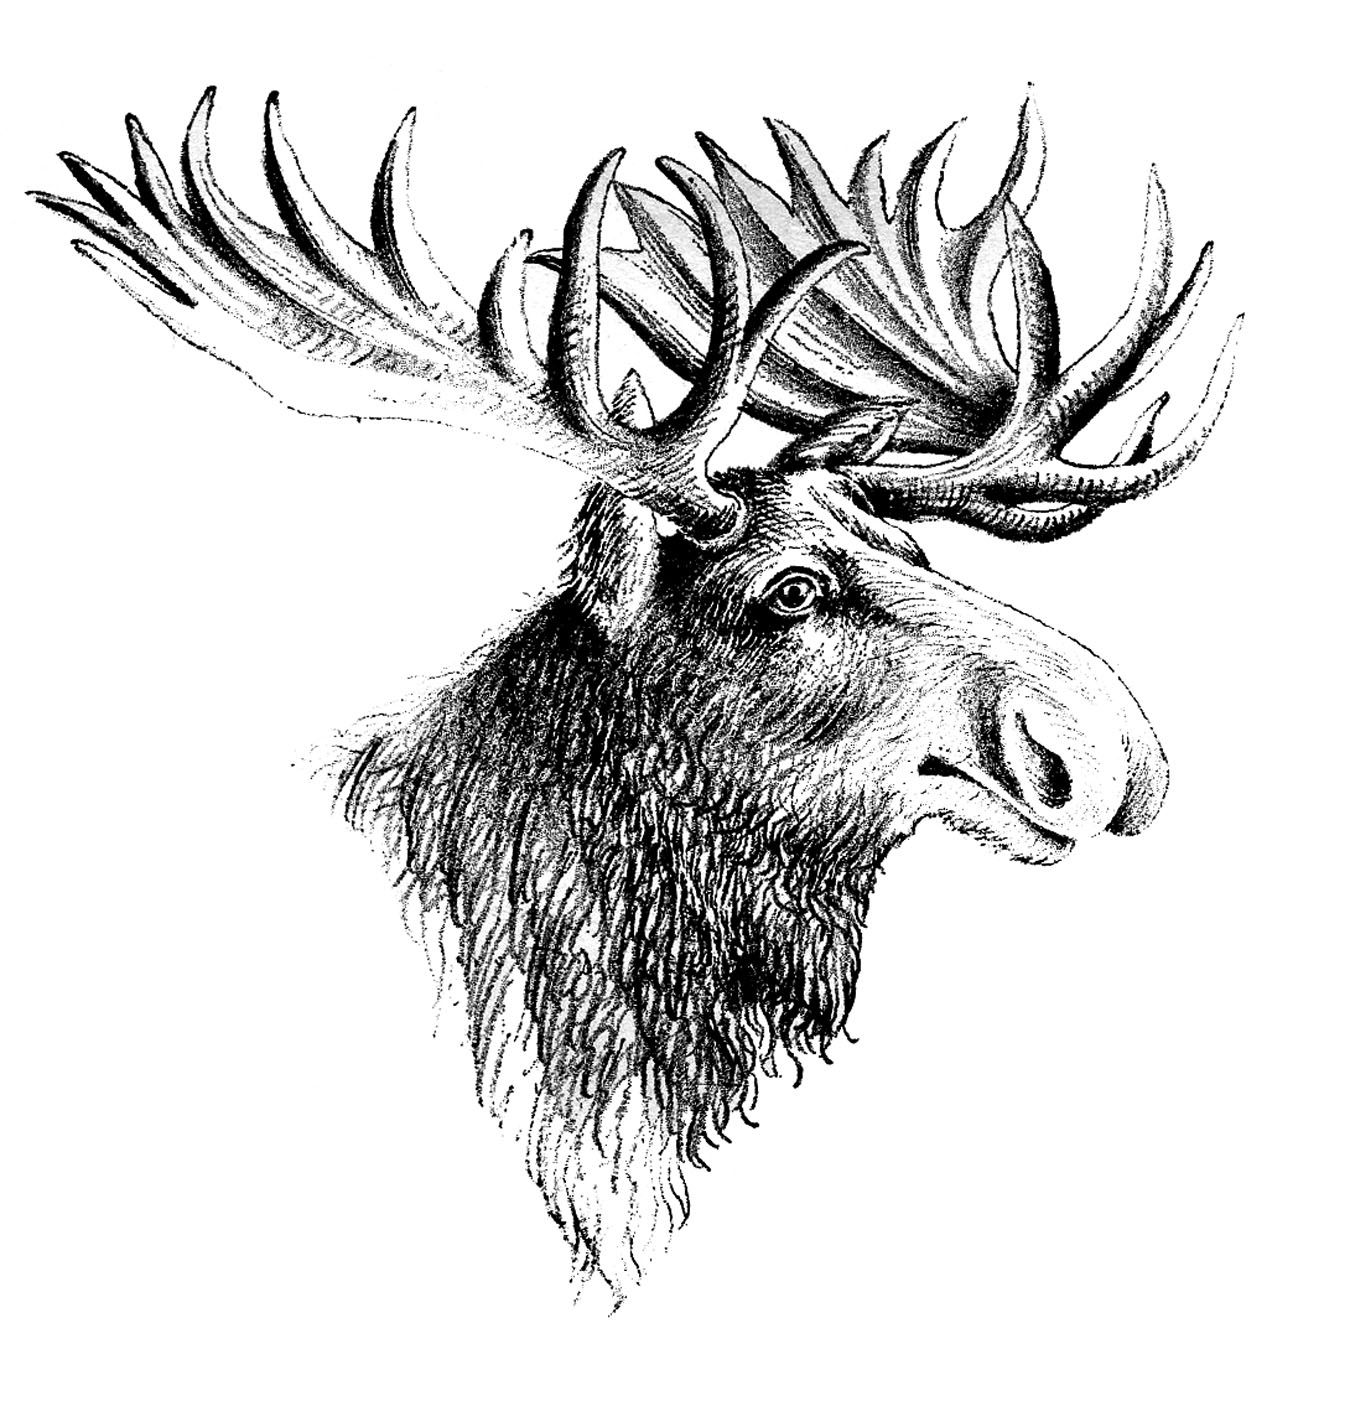 Moose fighting clipart black and white stock Vintage Clip Art - Moose | crafts | Clip art, Graphics fairy, Moose ... black and white stock